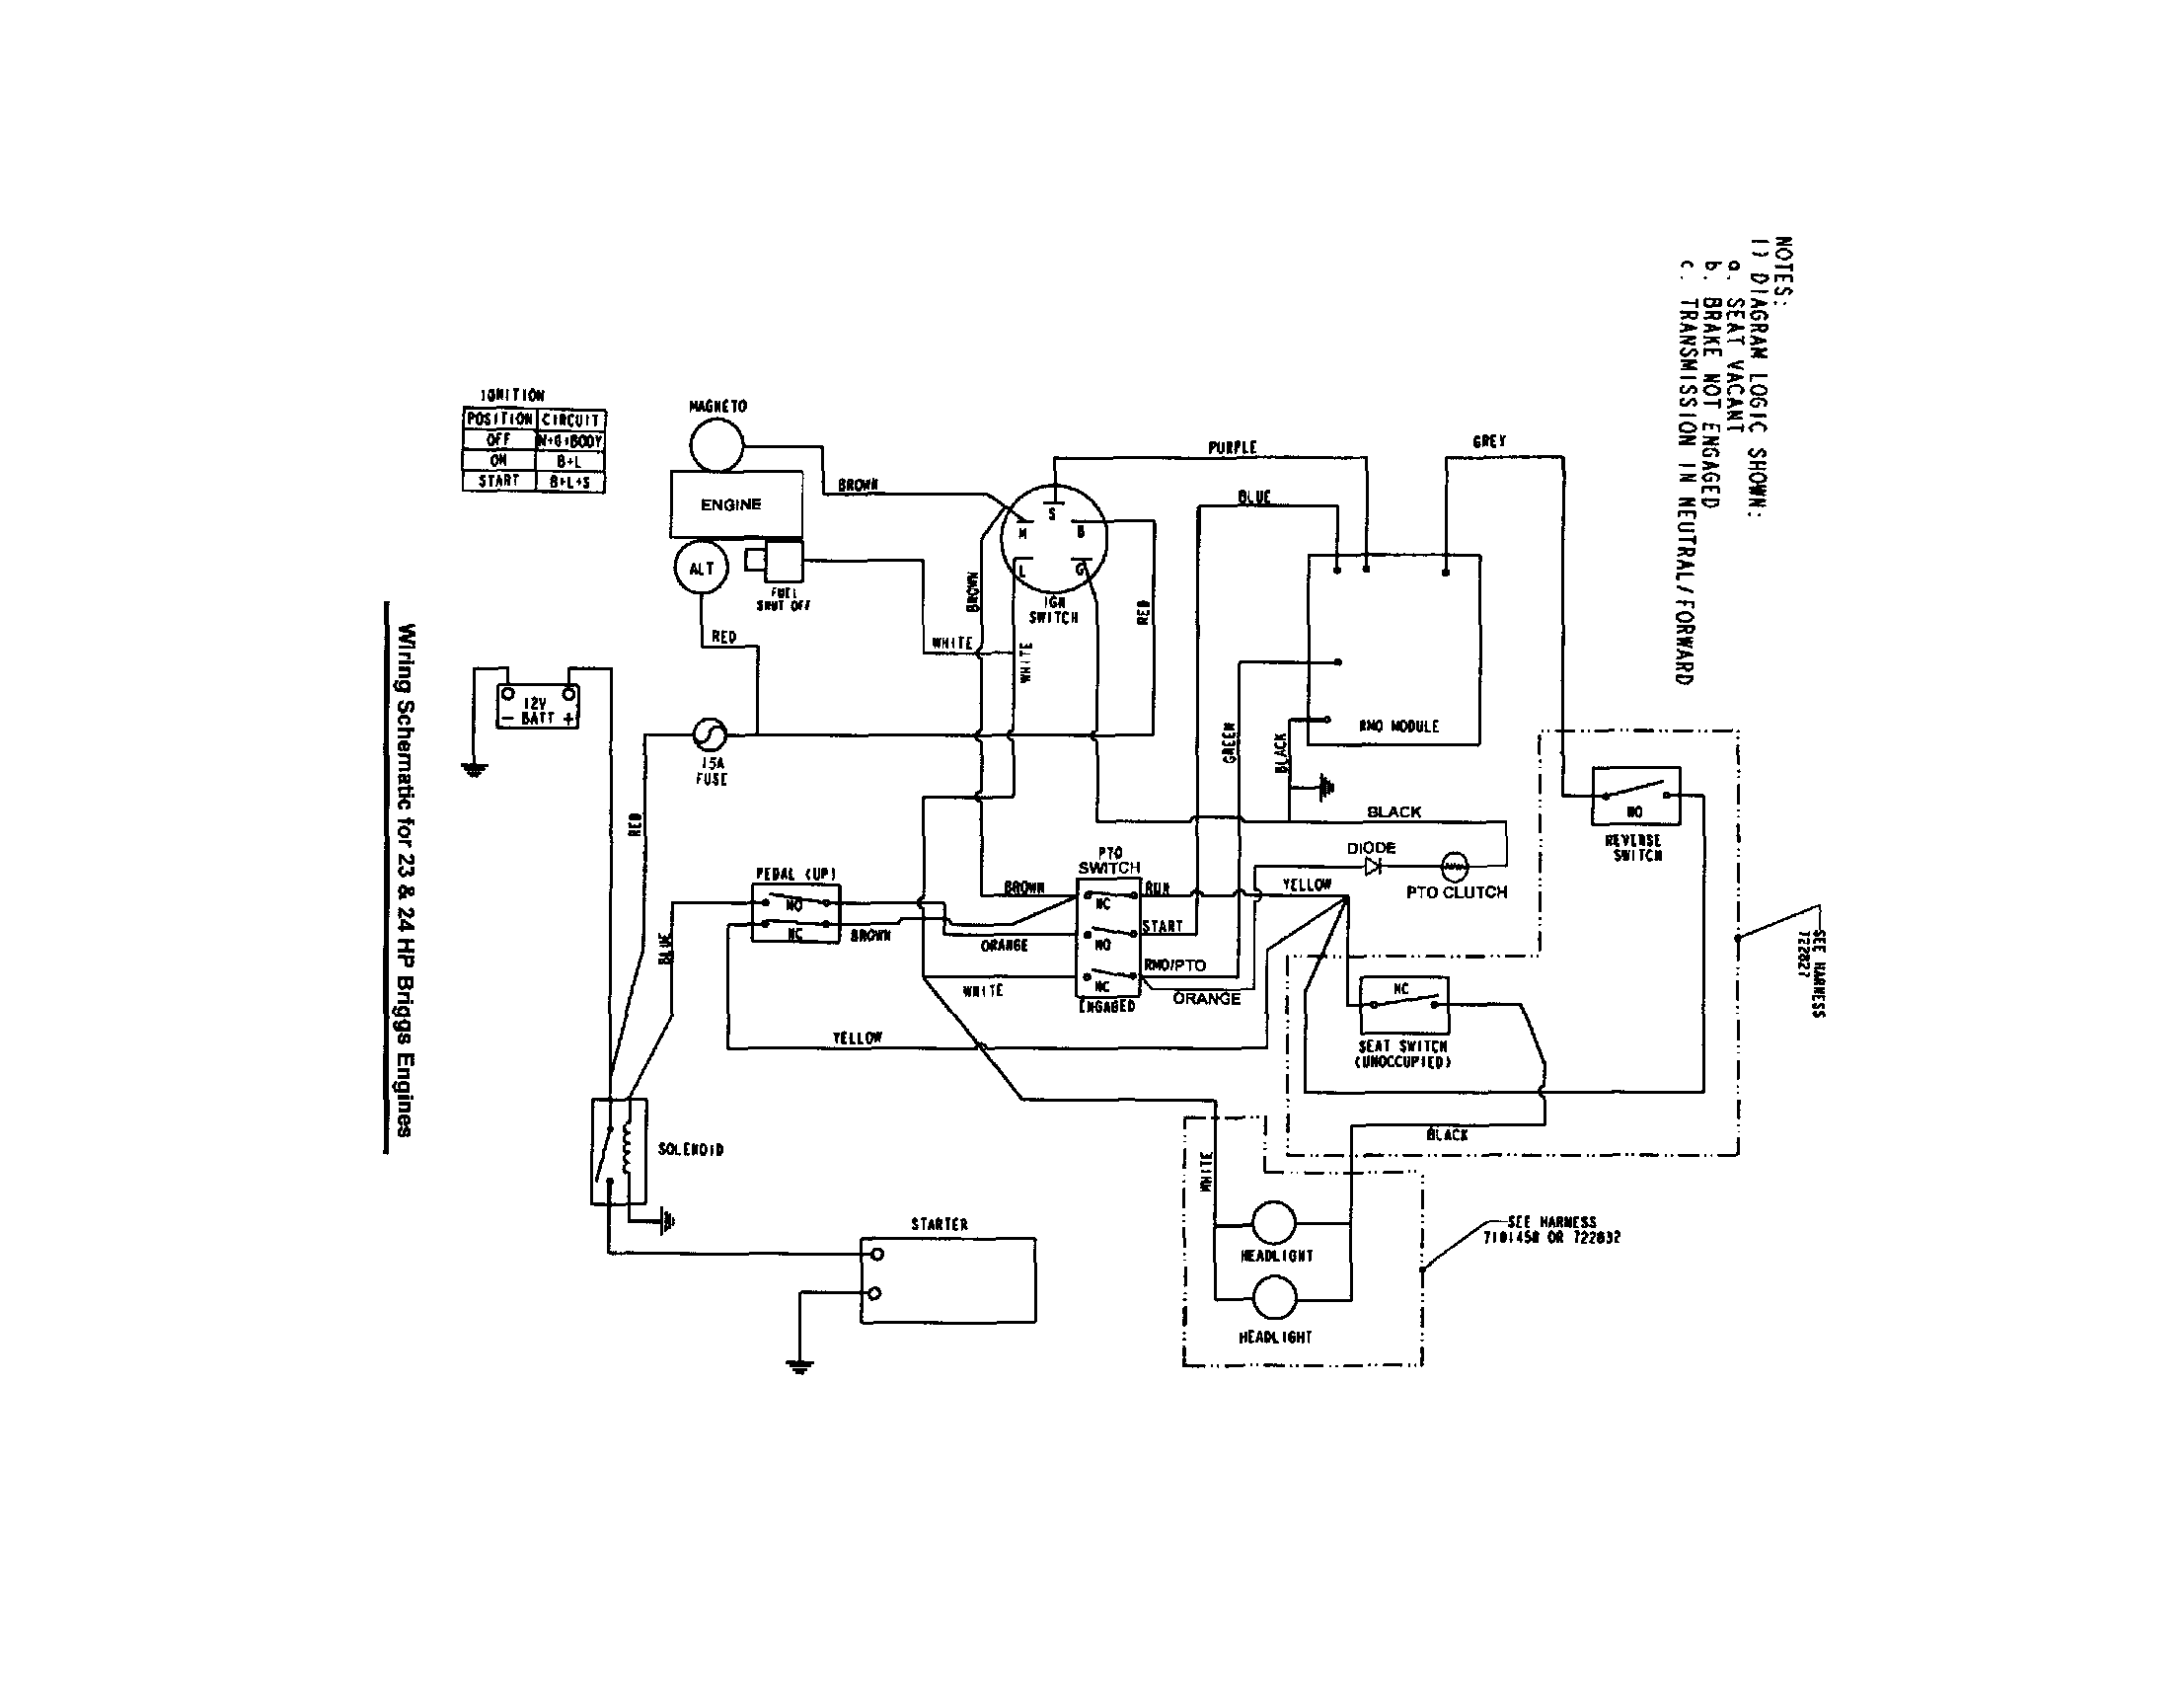 60658 snapper wiring harness wiring diagrams show 60658 snapper wiring harness [ 2213 x 1714 Pixel ]